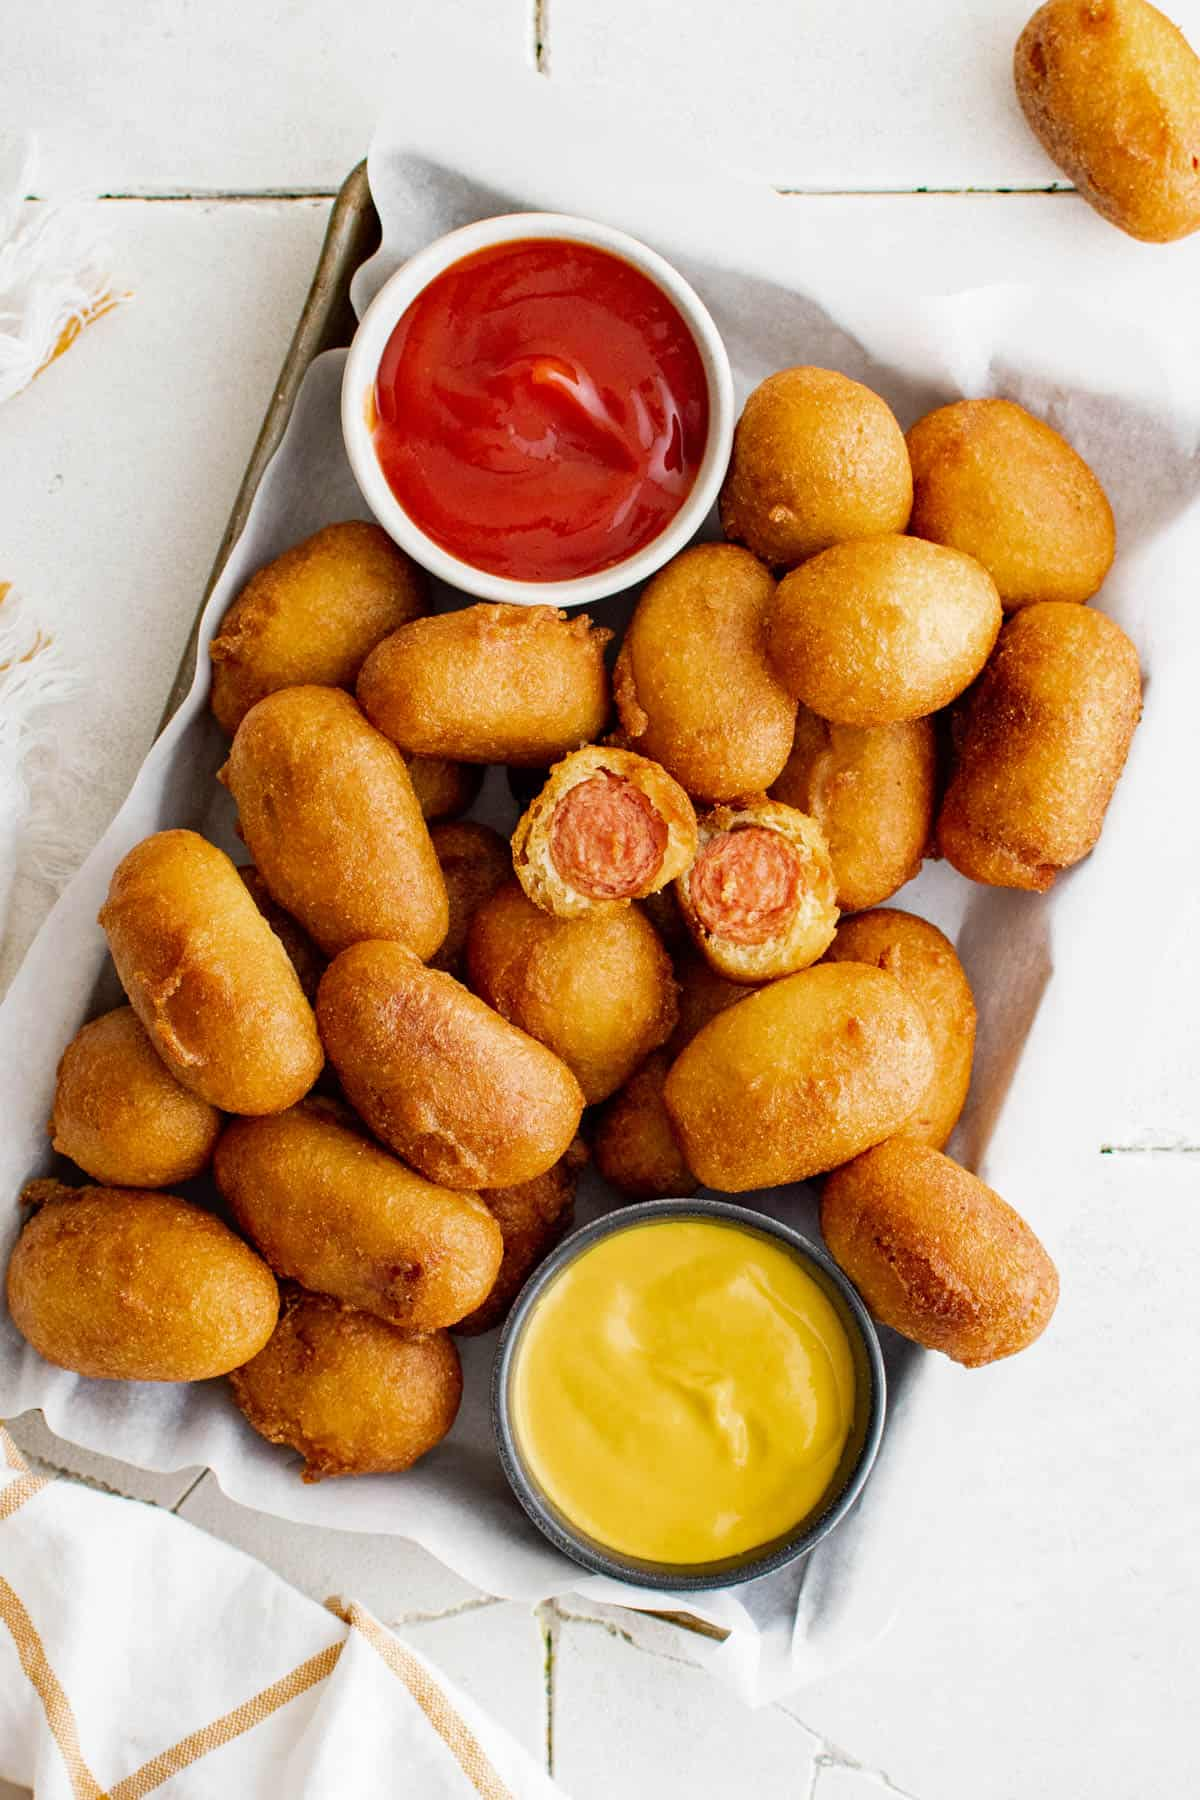 mini corn dogs on a tray with ketchup and mustard